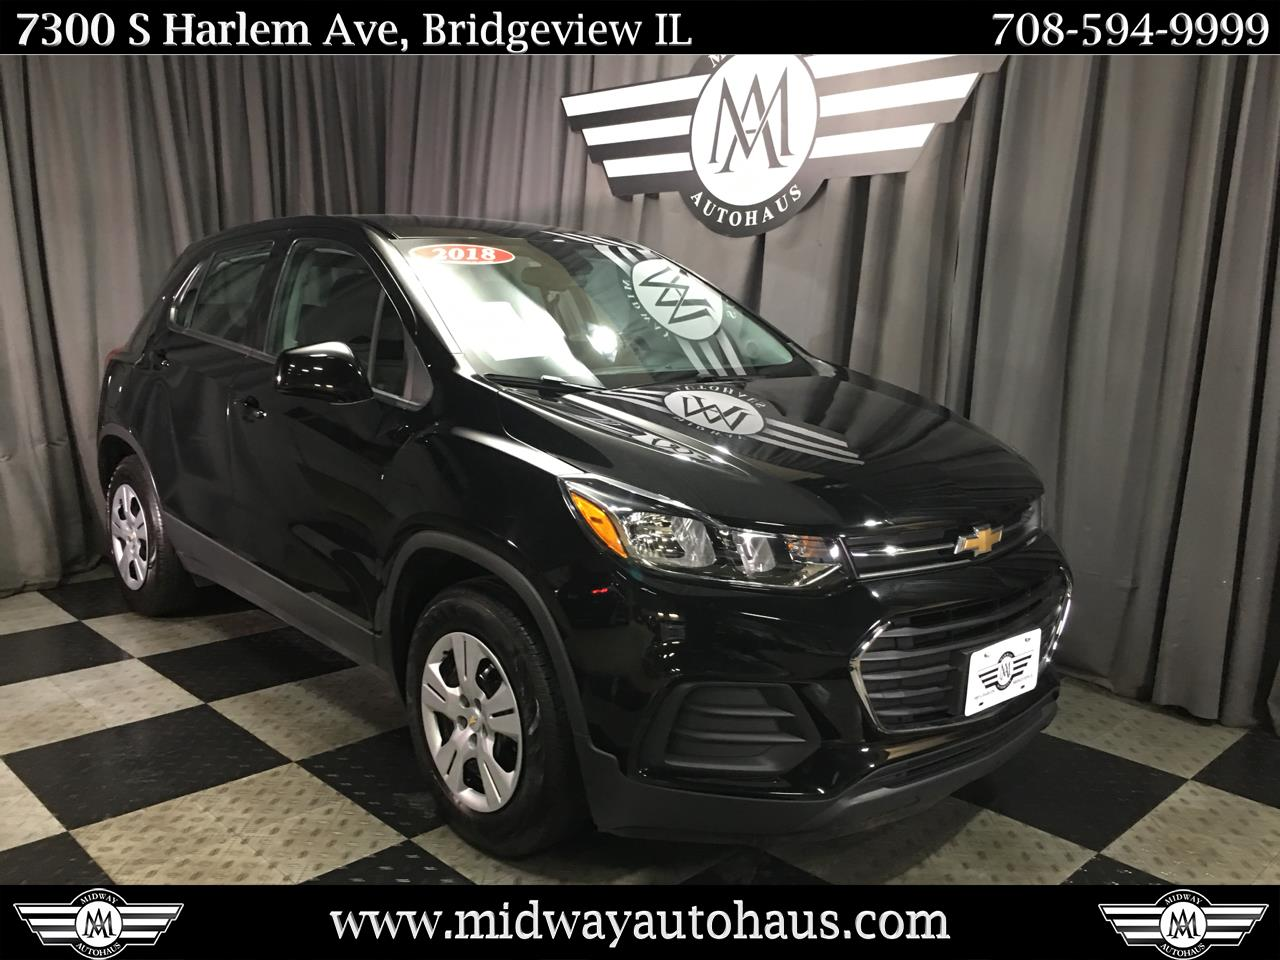 Pre-Owned 2018 Chevrolet Trax FWD 4dr LS